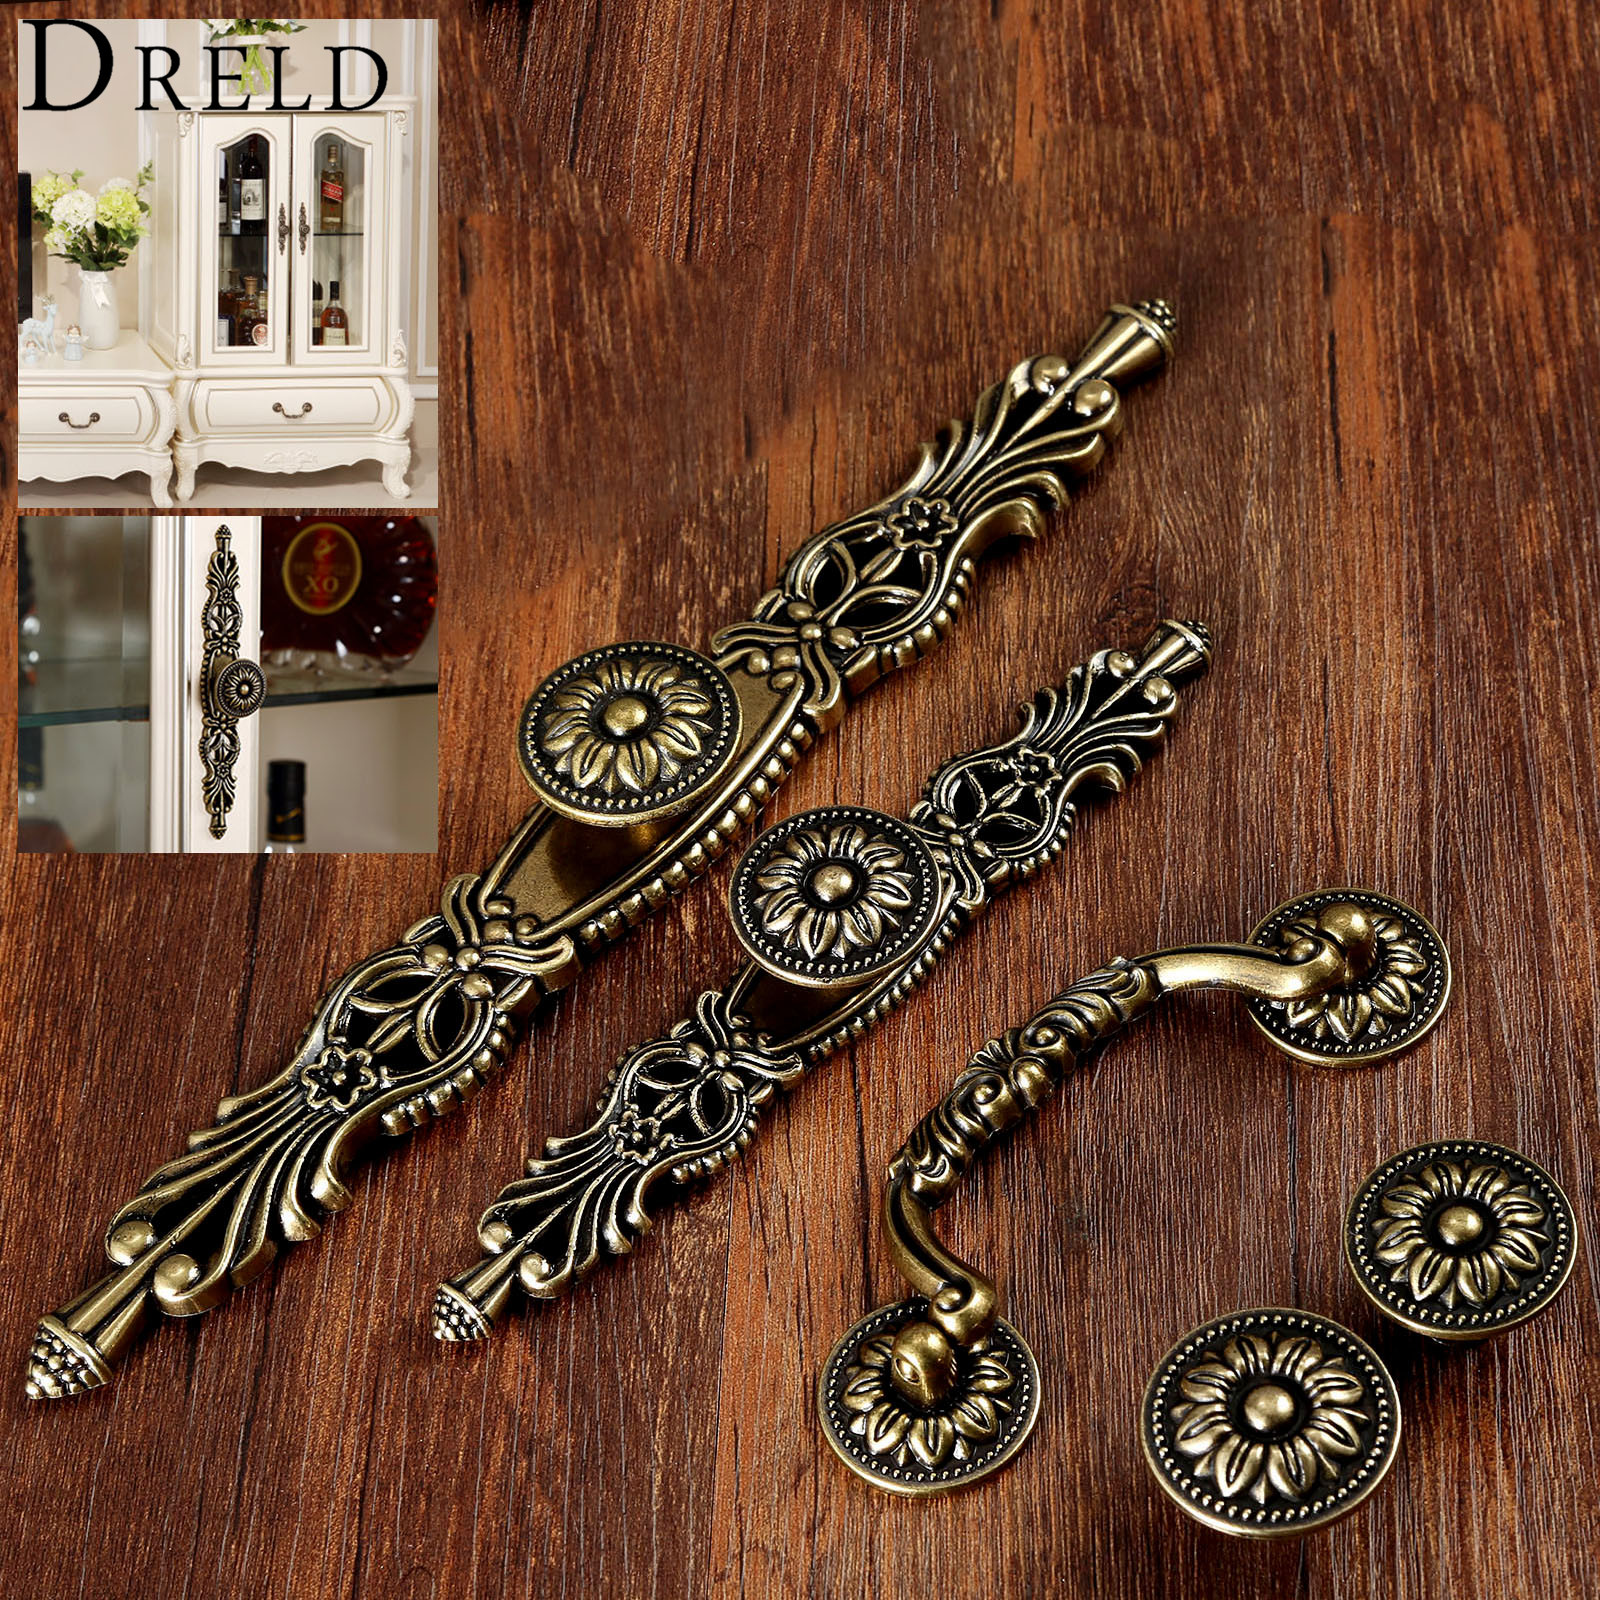 DRELD Antique Furniture Handle Vintage Cabinet Knobs and Handles Wardrobe Cupboard Drawer Kitchen Pull Knob Furniture Hareware 8 color vintage retro ceramics drawer knob cabinet cupboard door pull handle furniture decor kitchen furniture knobs and handles